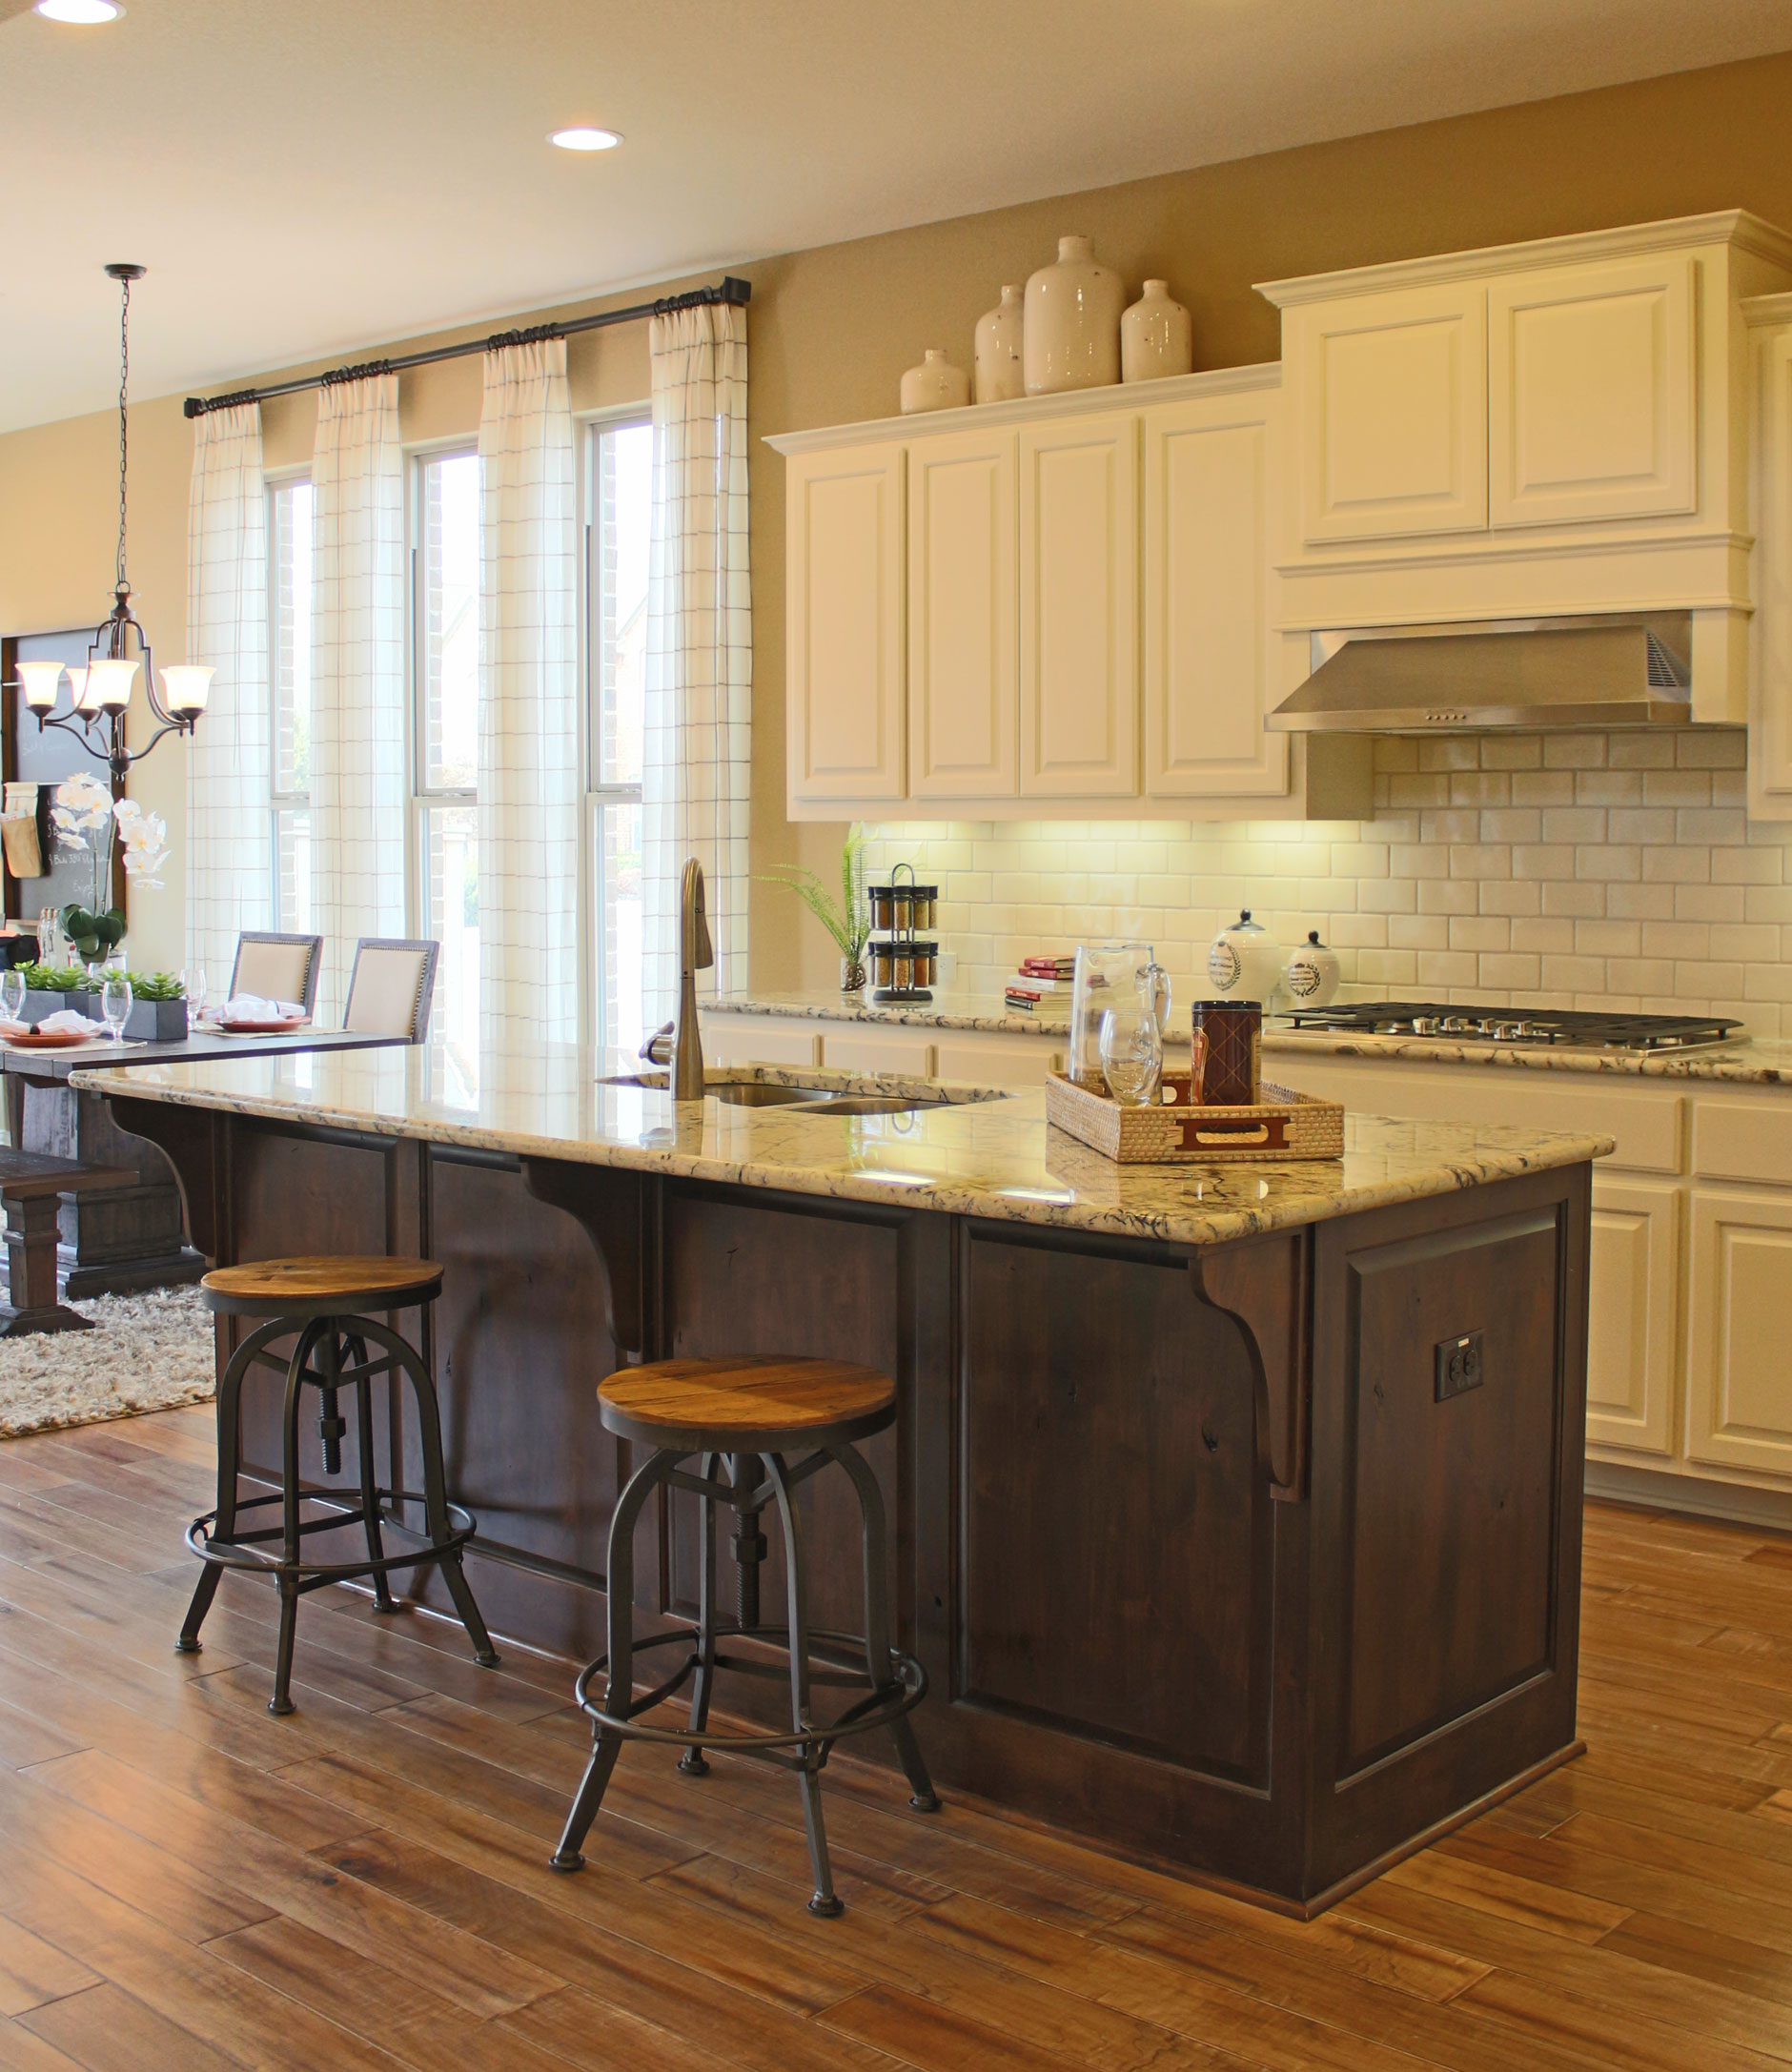 Cabinet Design Tips Archives Burrows Cabinets Central Texas Builder Direct Custom Cabinets